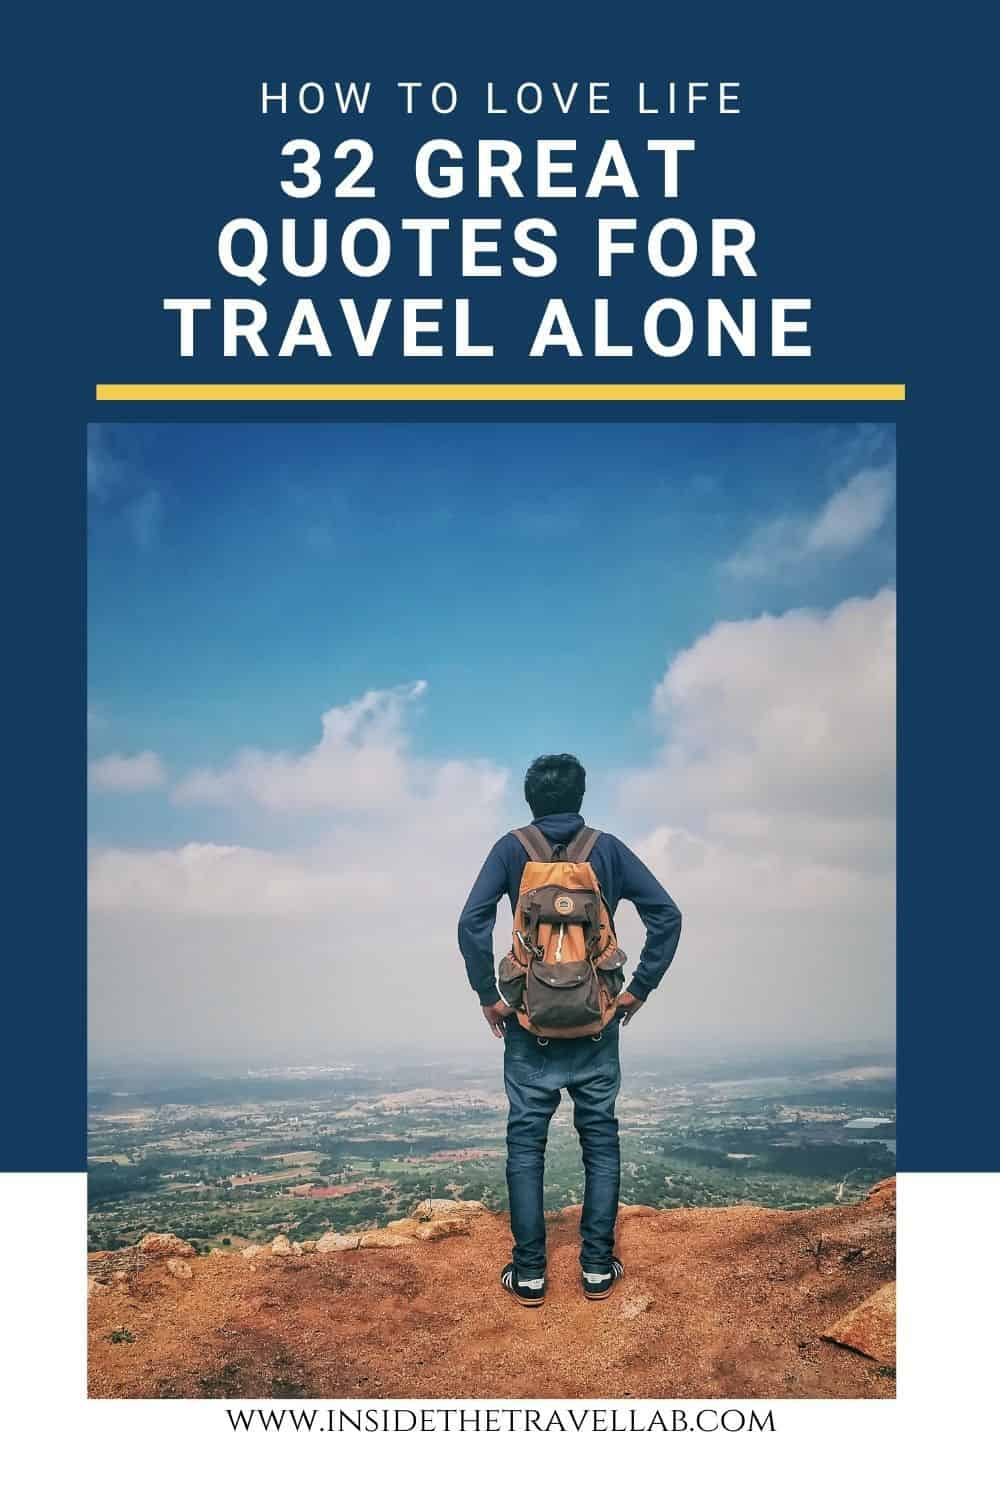 Great quotes for traveling alone and on your own on a solo trip